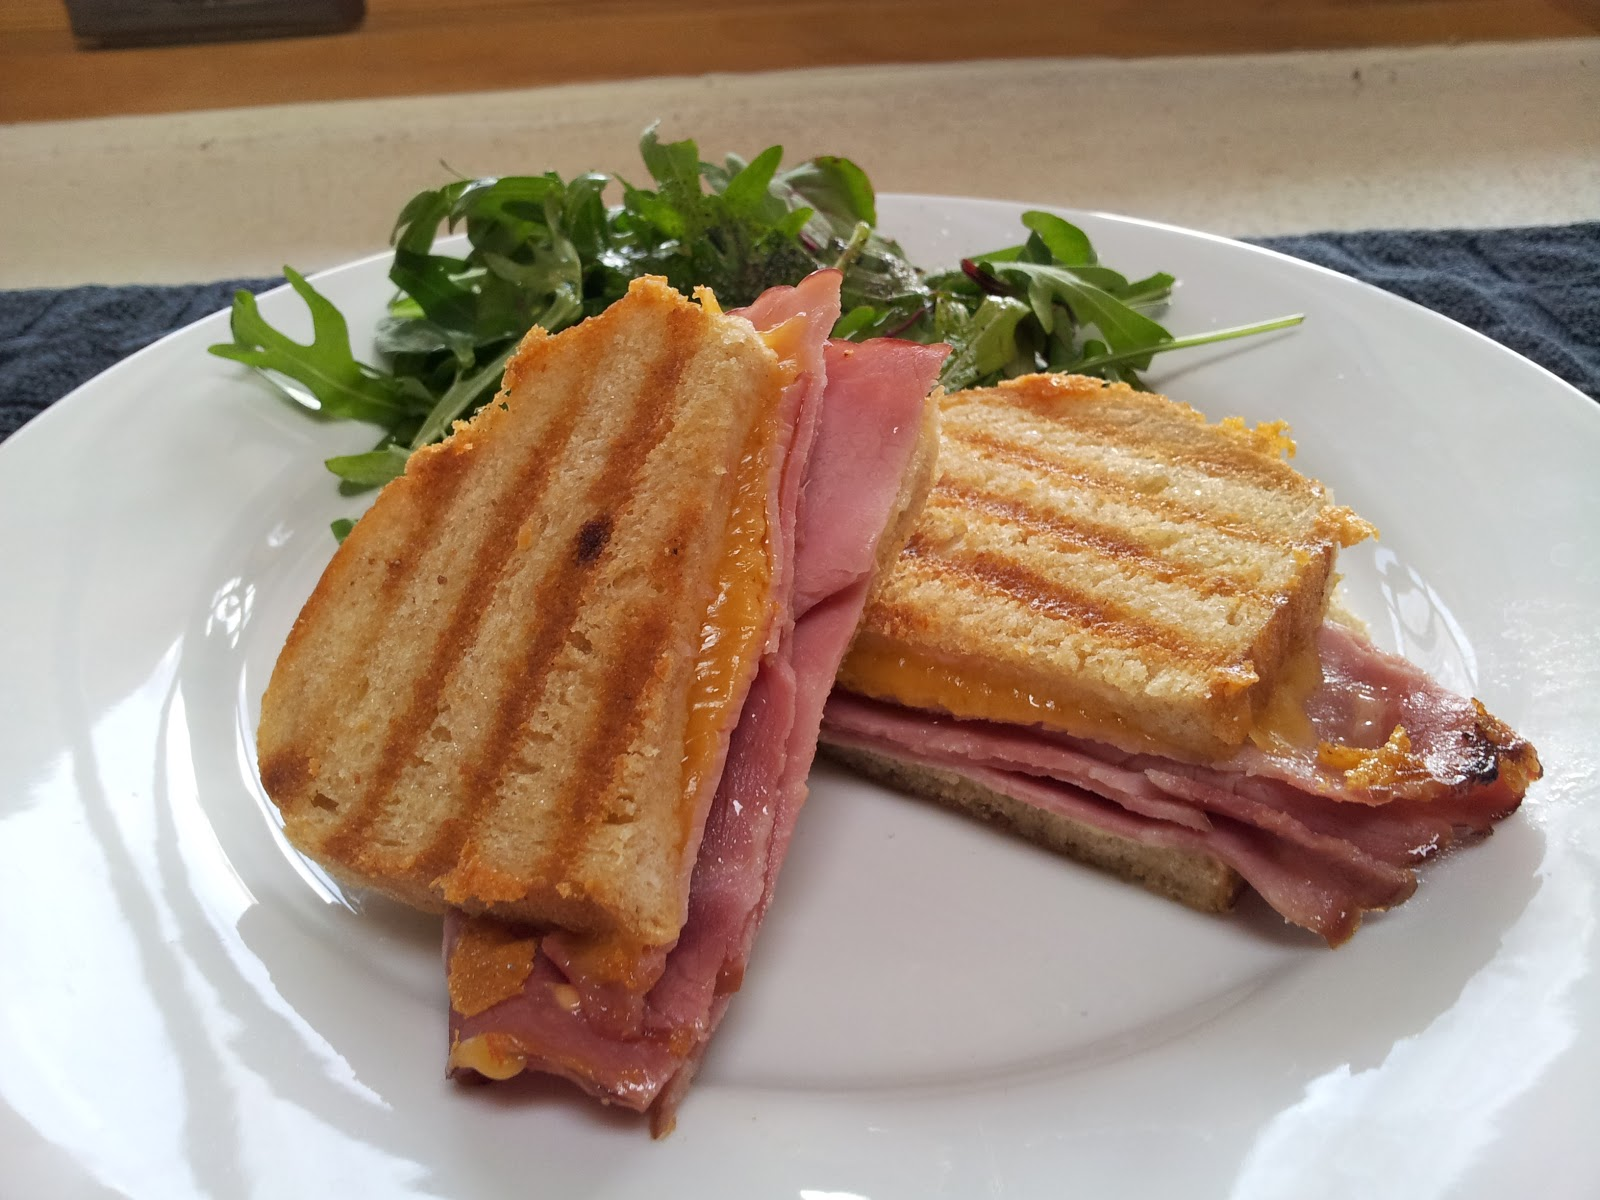 ... ham & cheese sandwich is good a grilled ham and cheese is even better